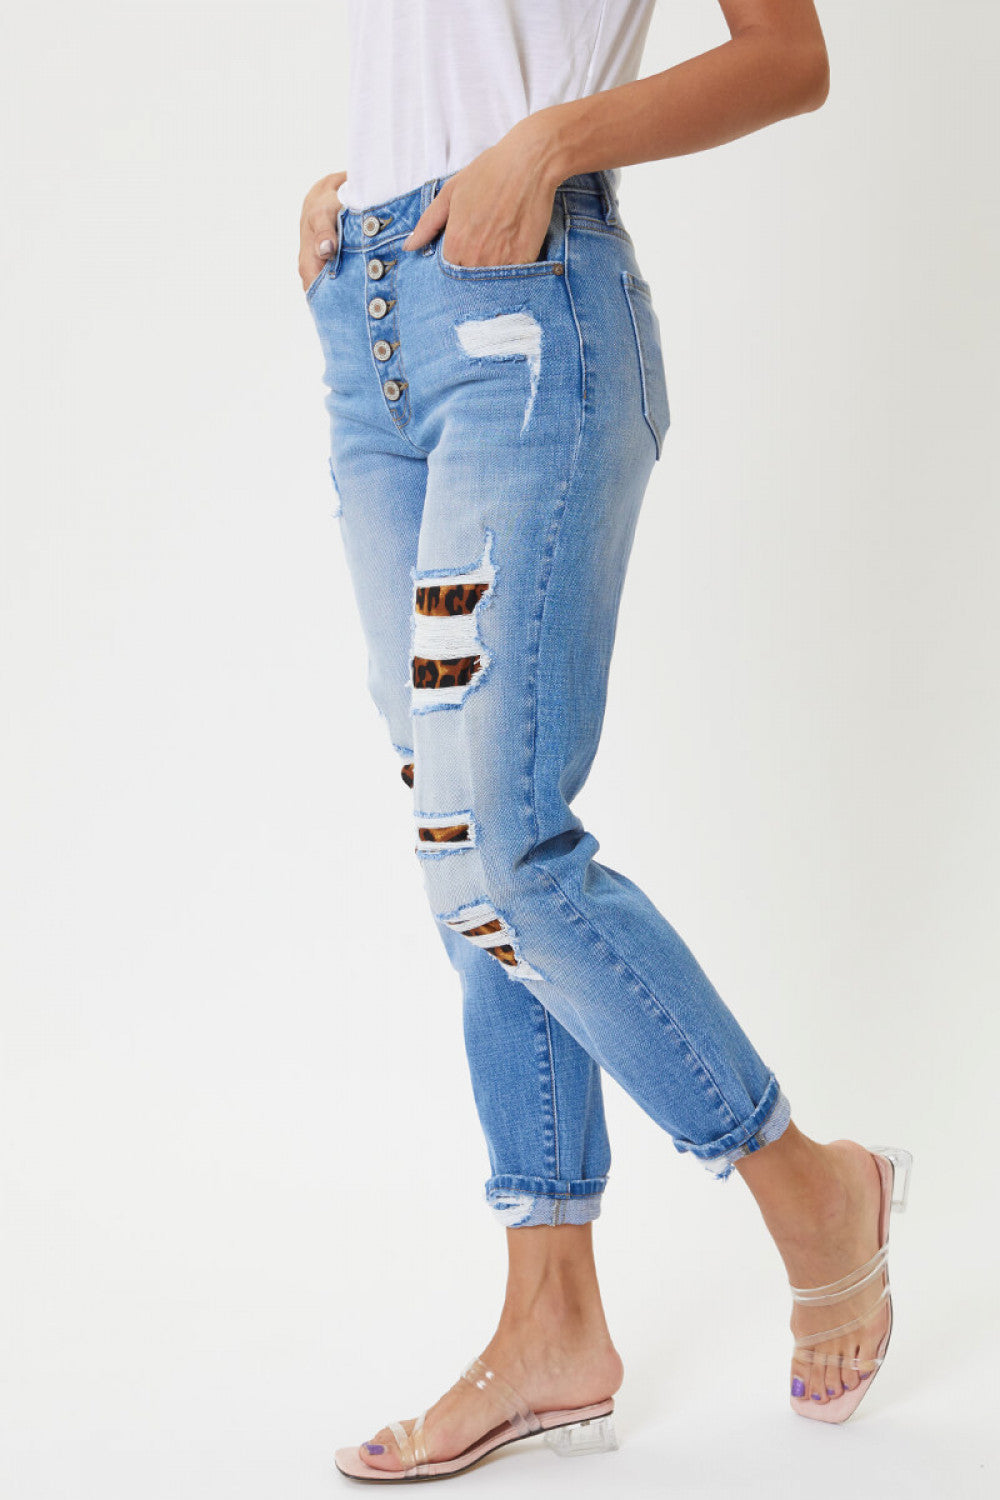 Vienna Medium Wash KanCan Jeans (item #31M)